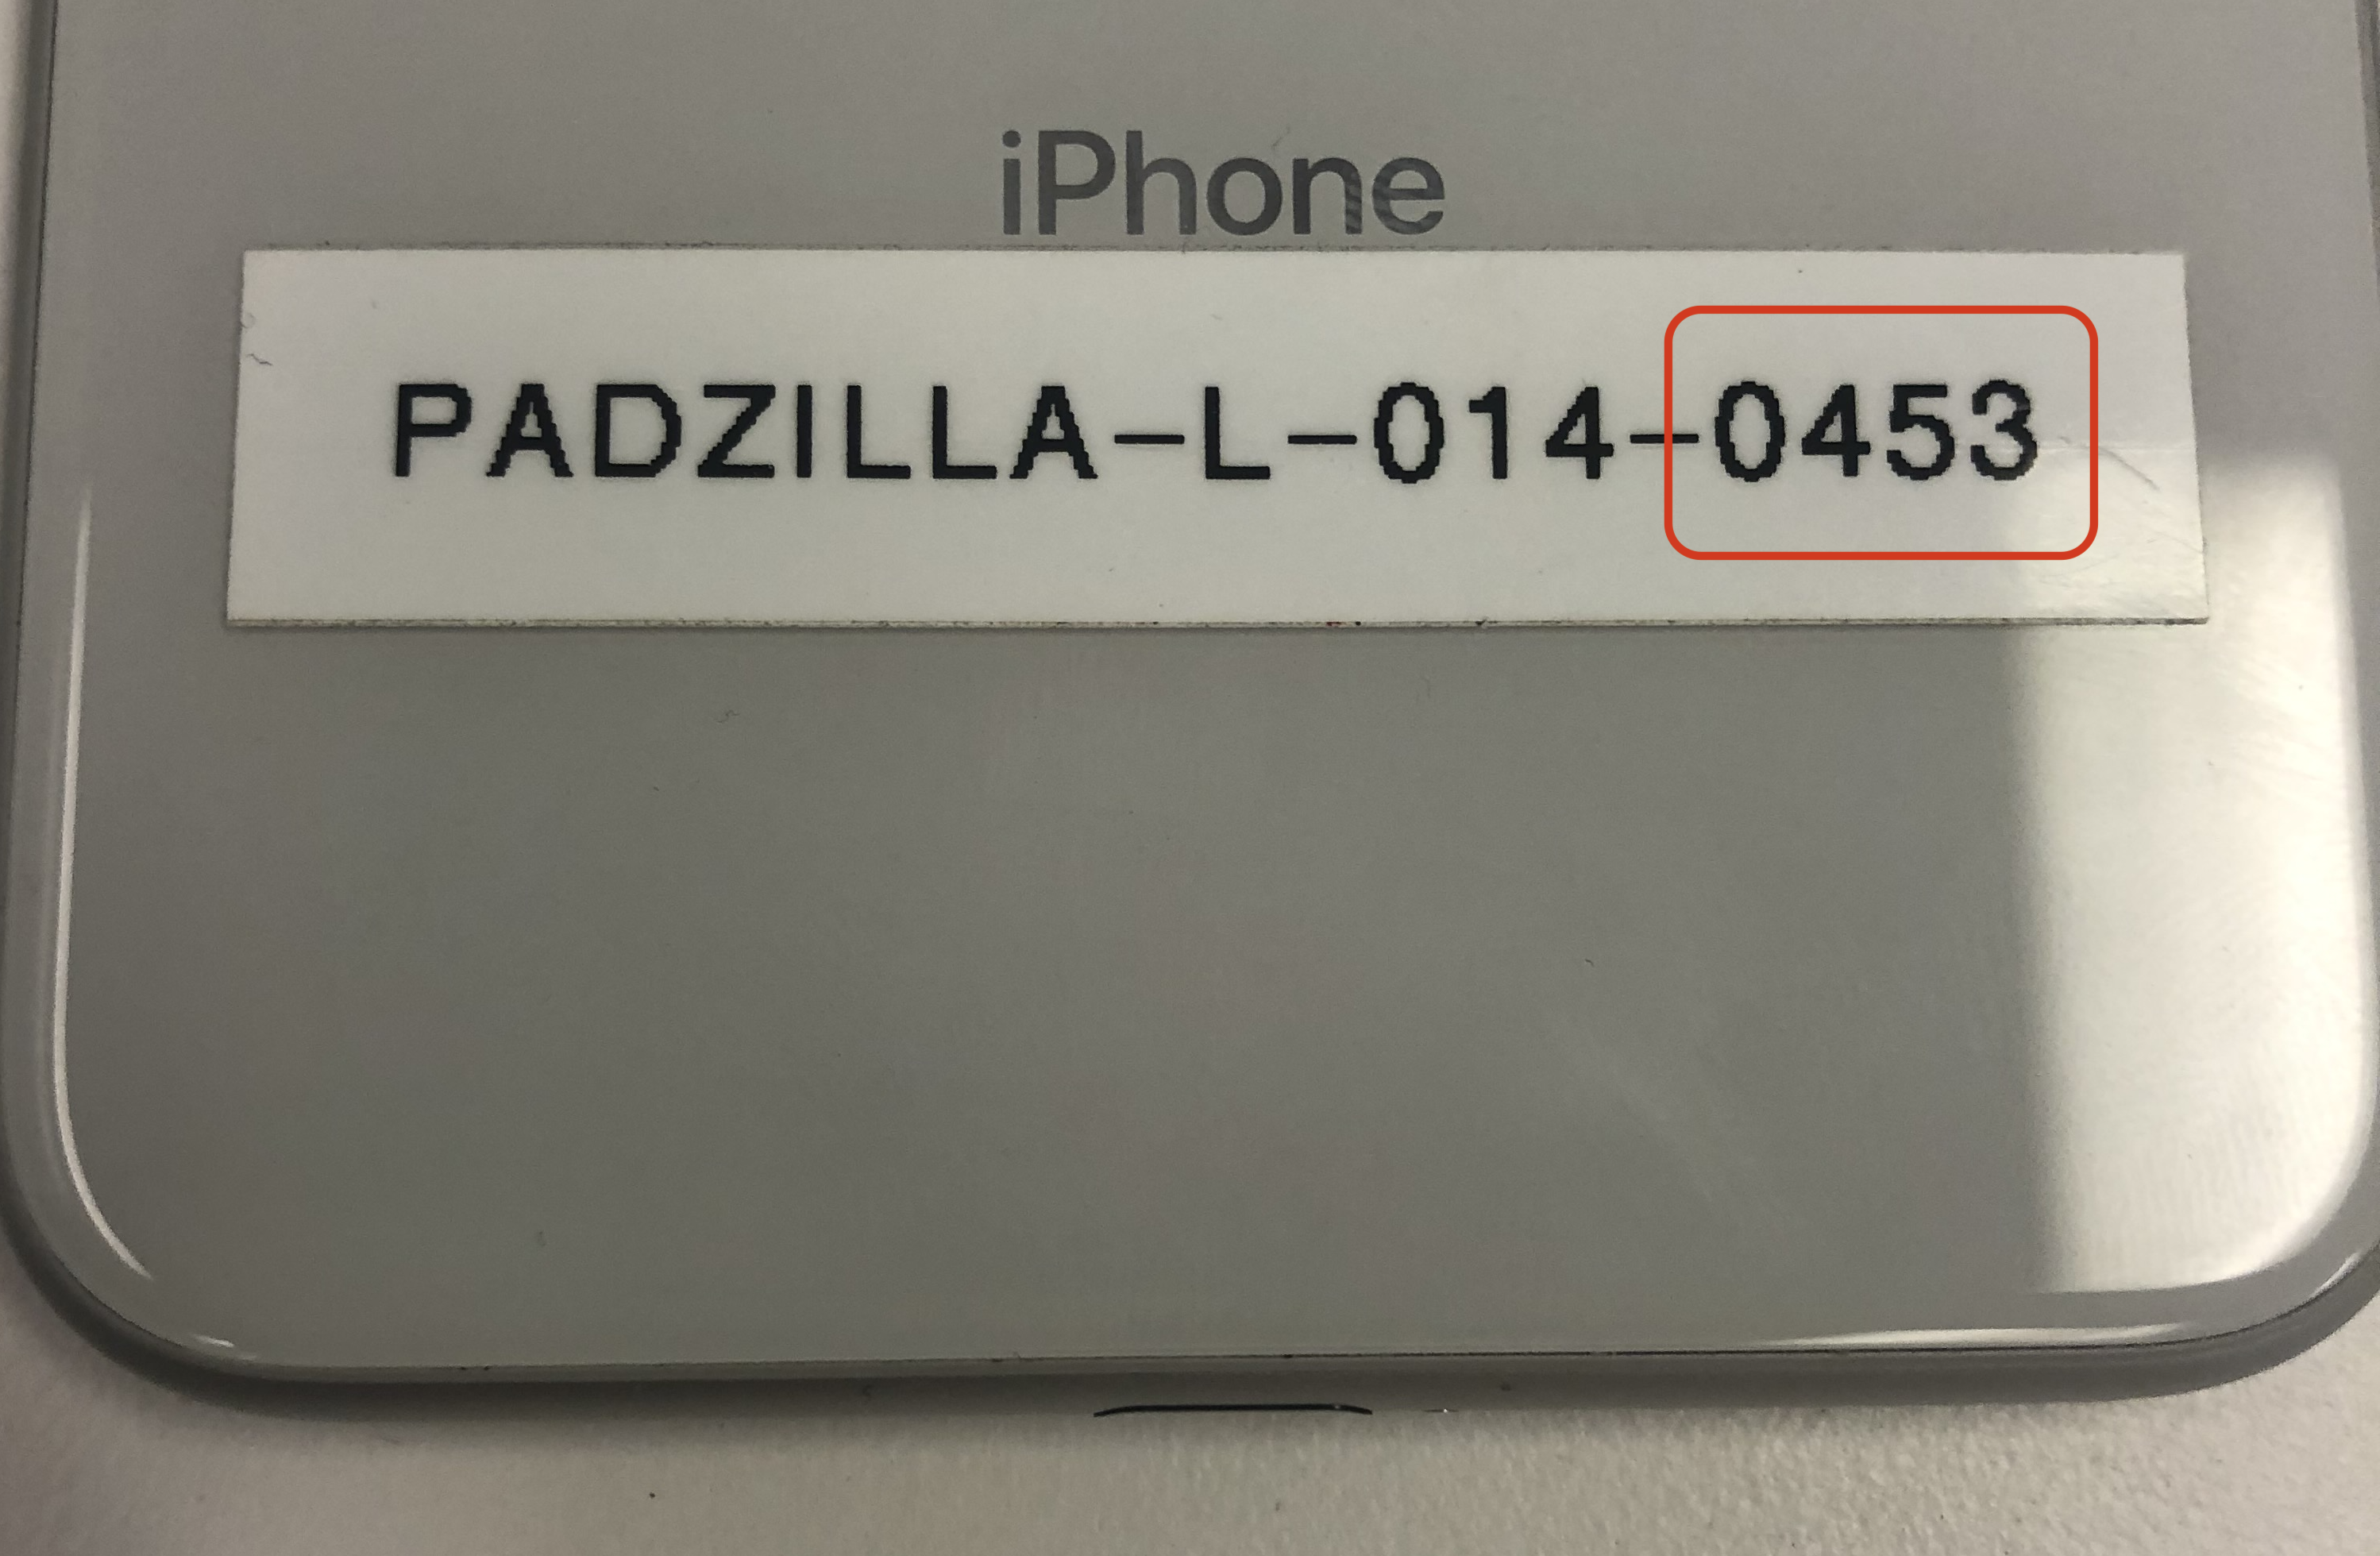 The Last 4 Digits Of The Padzilla's Unit Number